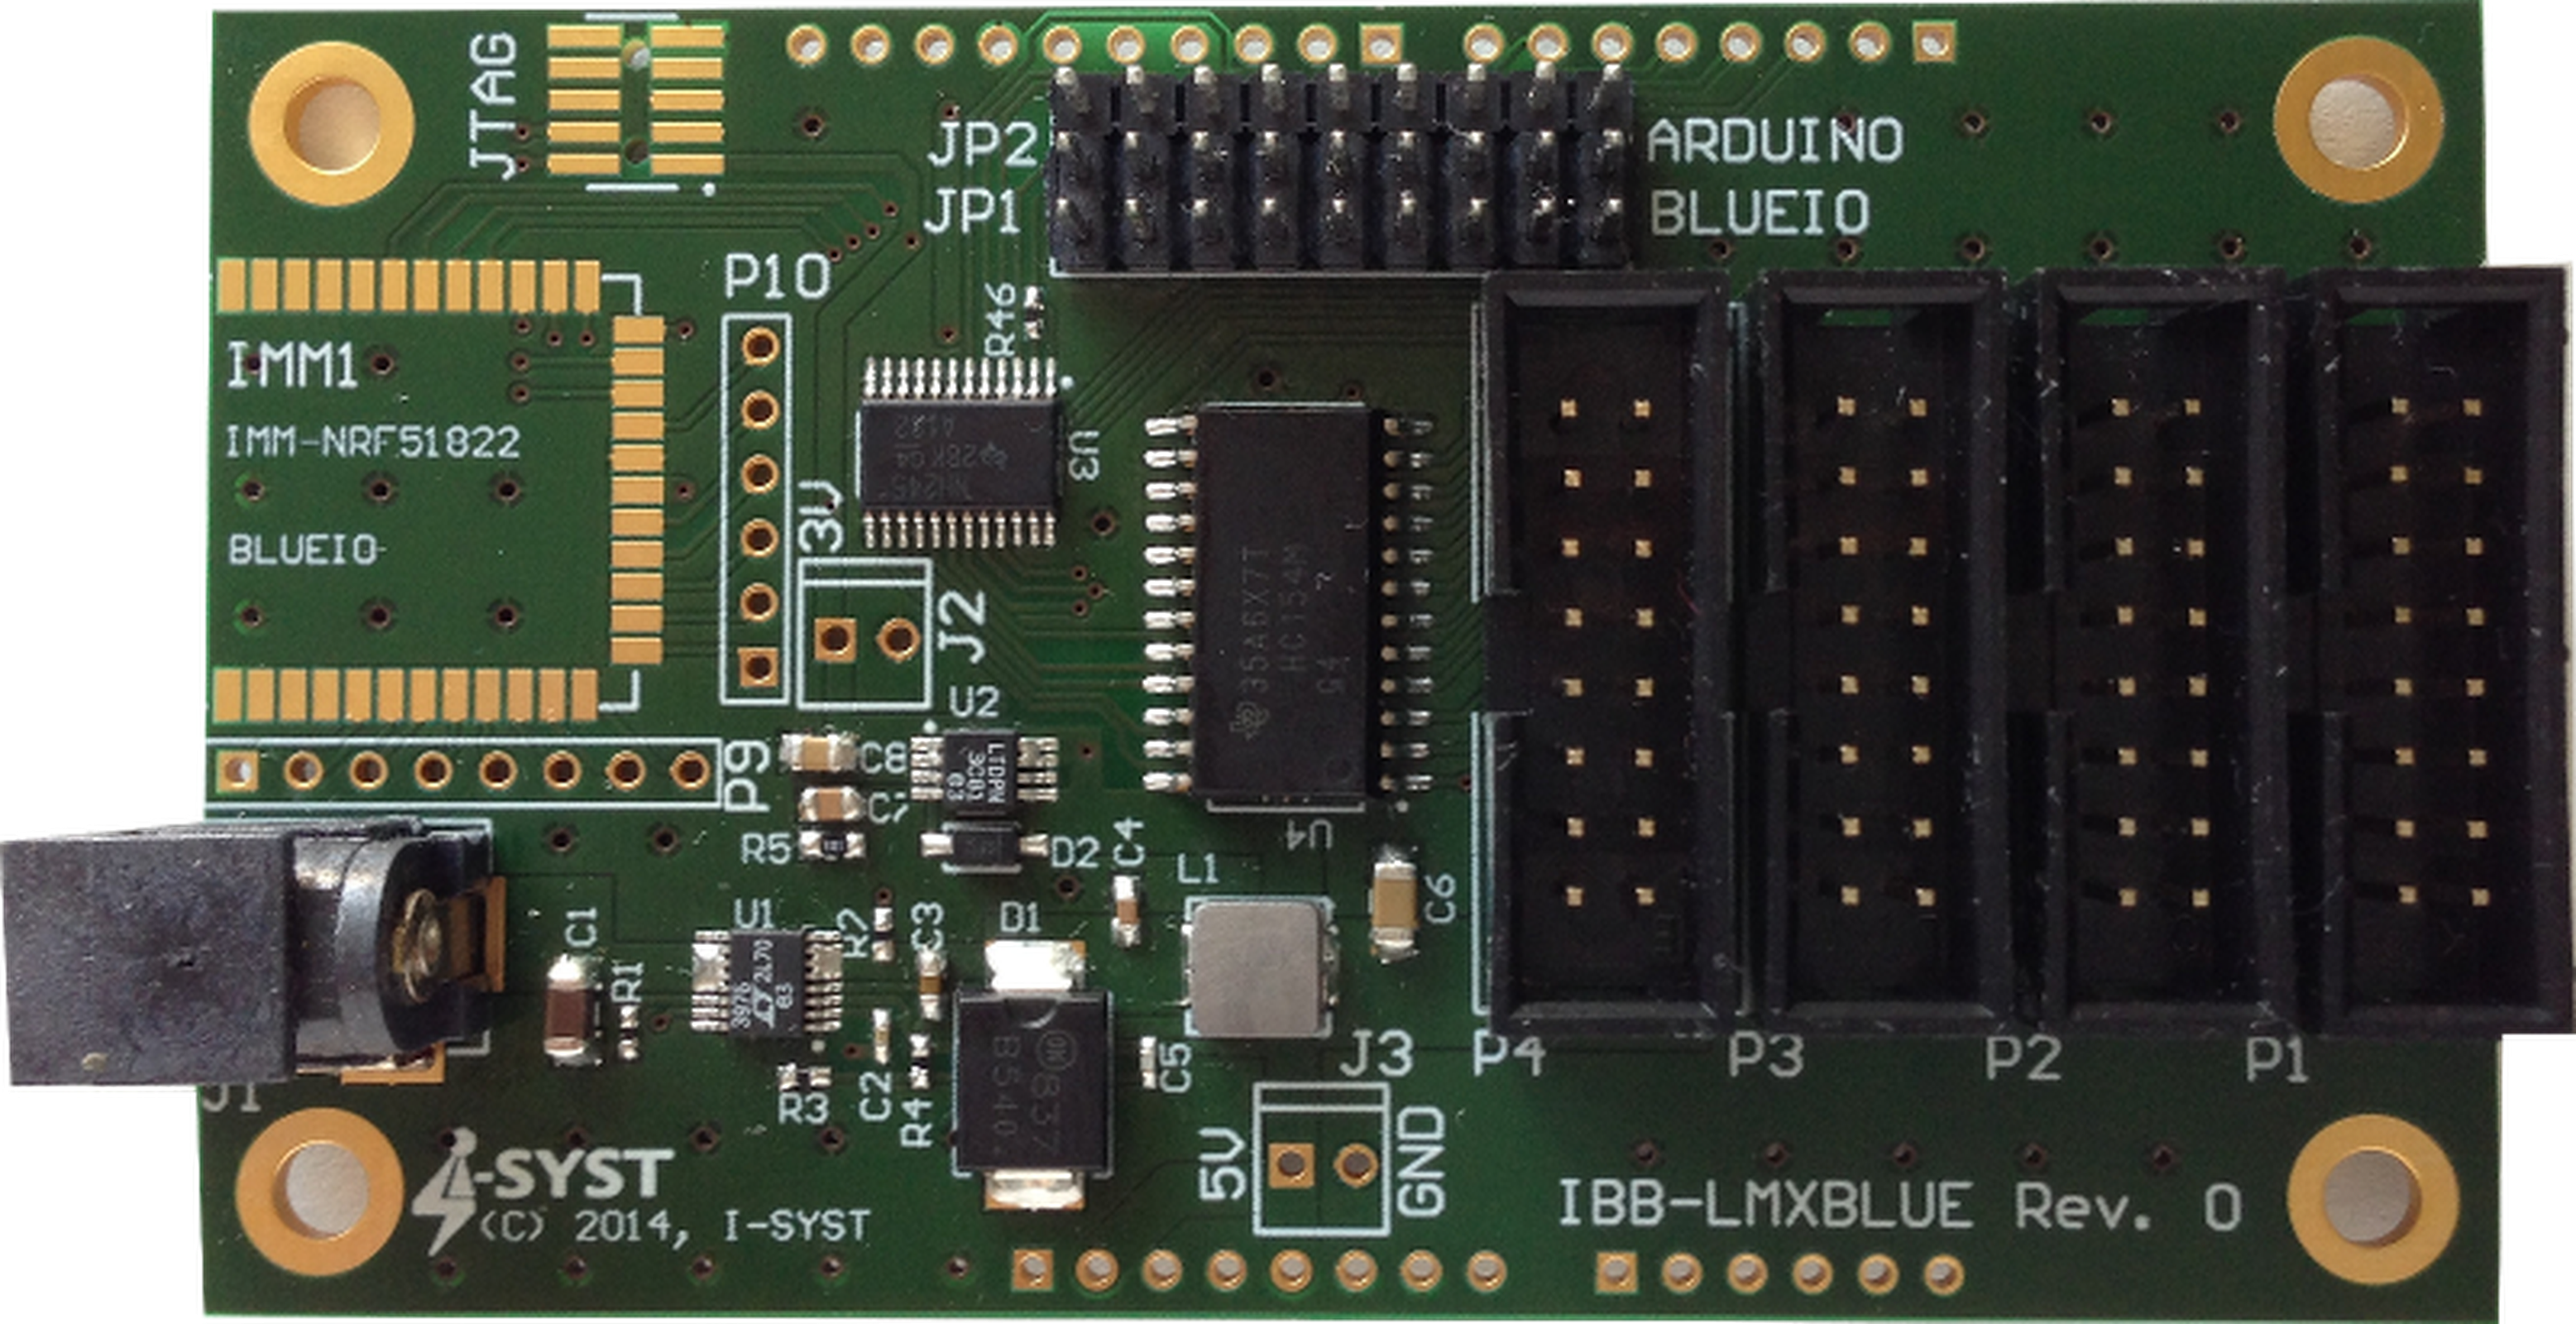 Led matrix display board for arduino arm from i syst